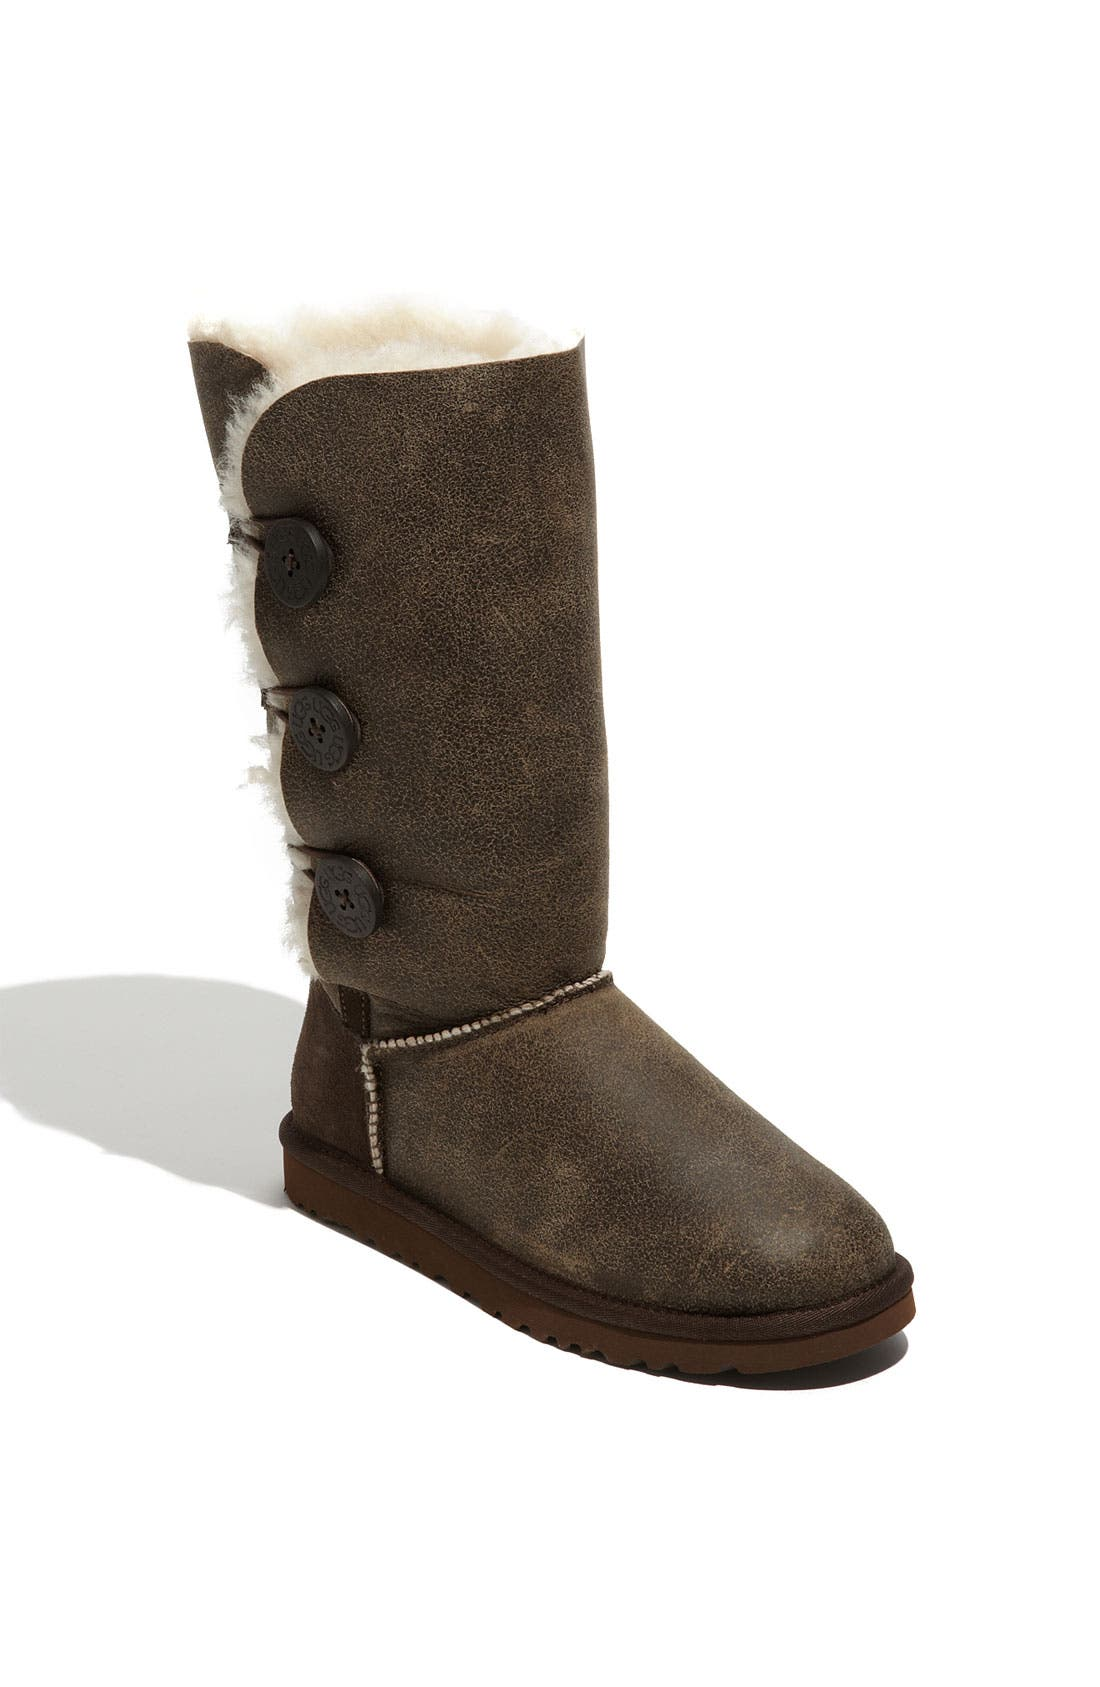 Main Image - UGG® Australia 'Bailey Button Triplet' Boot (Bomber) (Women)